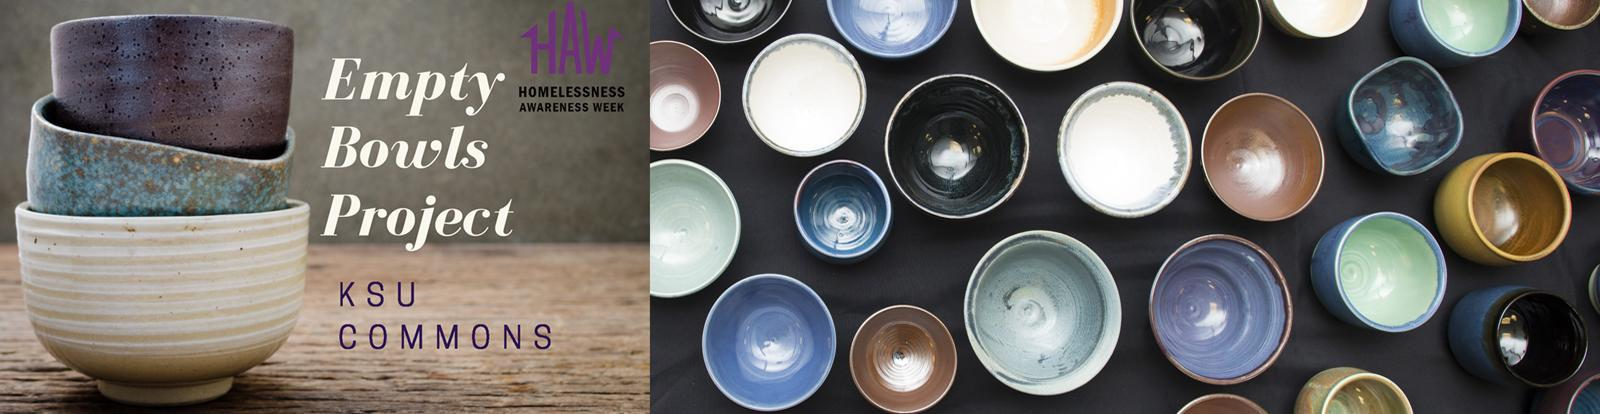 "Join us for the ""Empty Bowls Project"" on Nov. 7th"